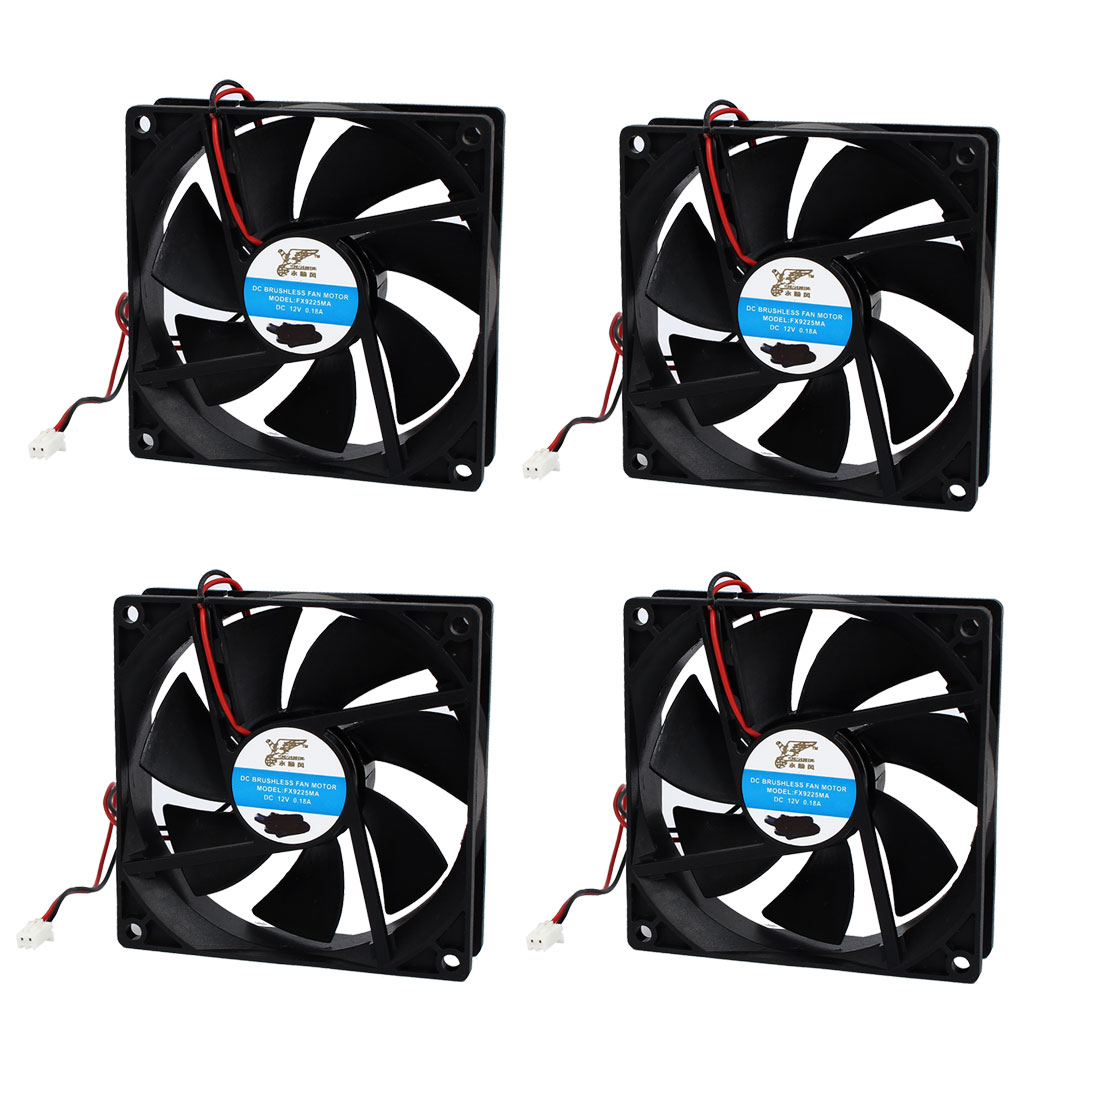 9cm x 9cm x 2.5cm Sleeve Bearing CPU Cooler Cooling Fan DC 12V 0.18A 4pcs